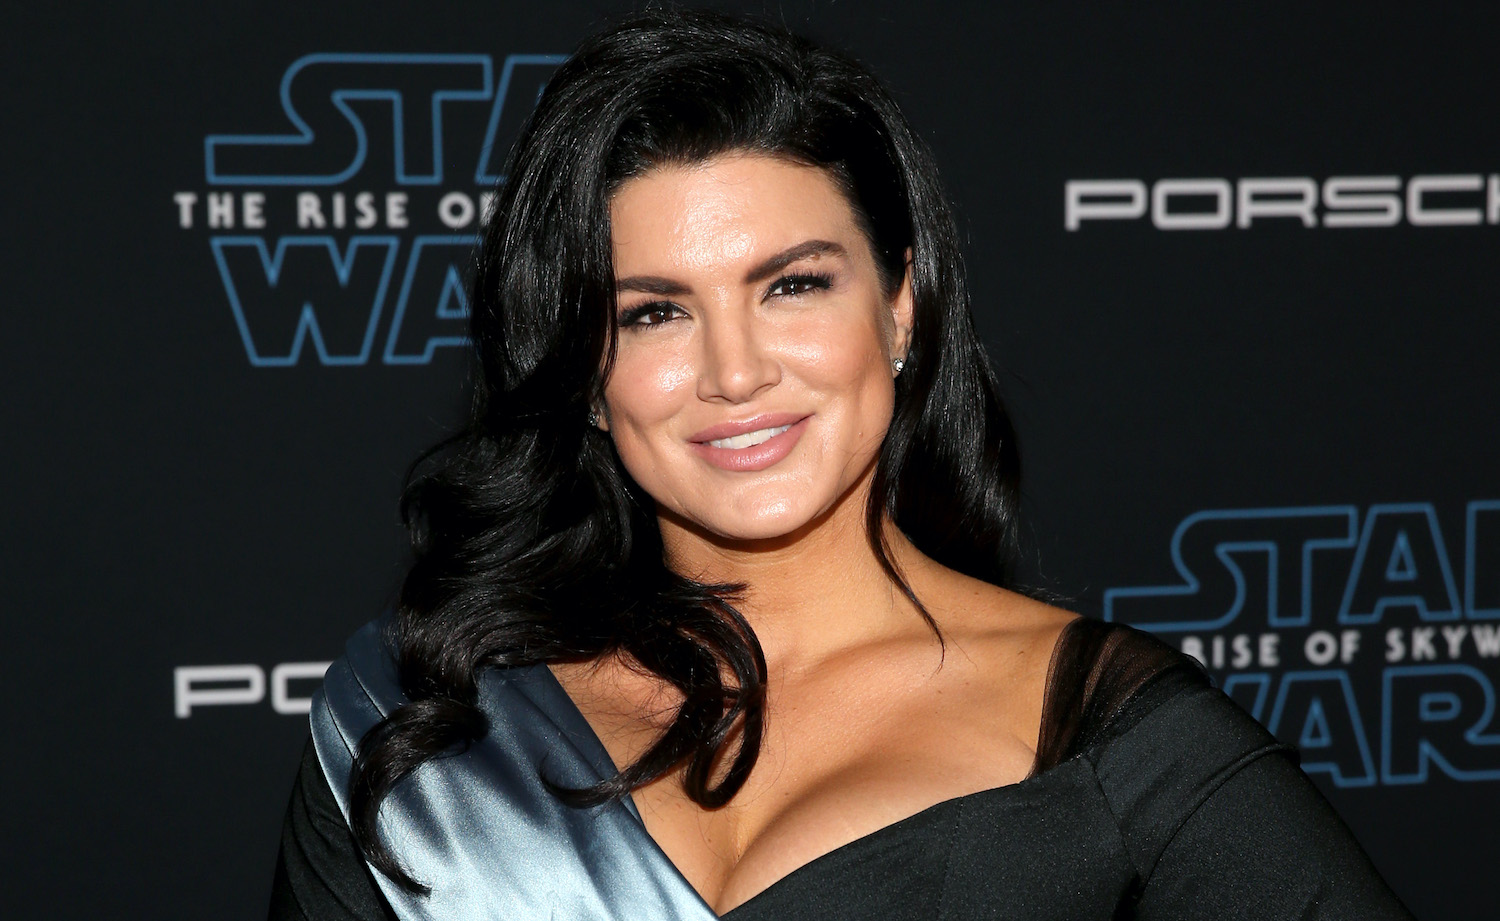 """HOLLYWOOD, CALIFORNIA - DECEMBER 16: Gina Carano arrives for the World Premiere of """"Star Wars: The Rise of Skywalker"""", the highly anticipated conclusion of the Skywalker saga on December 16, 2019 in Hollywood, California. (Photo by Jesse Grant/Getty Images for Disney)"""